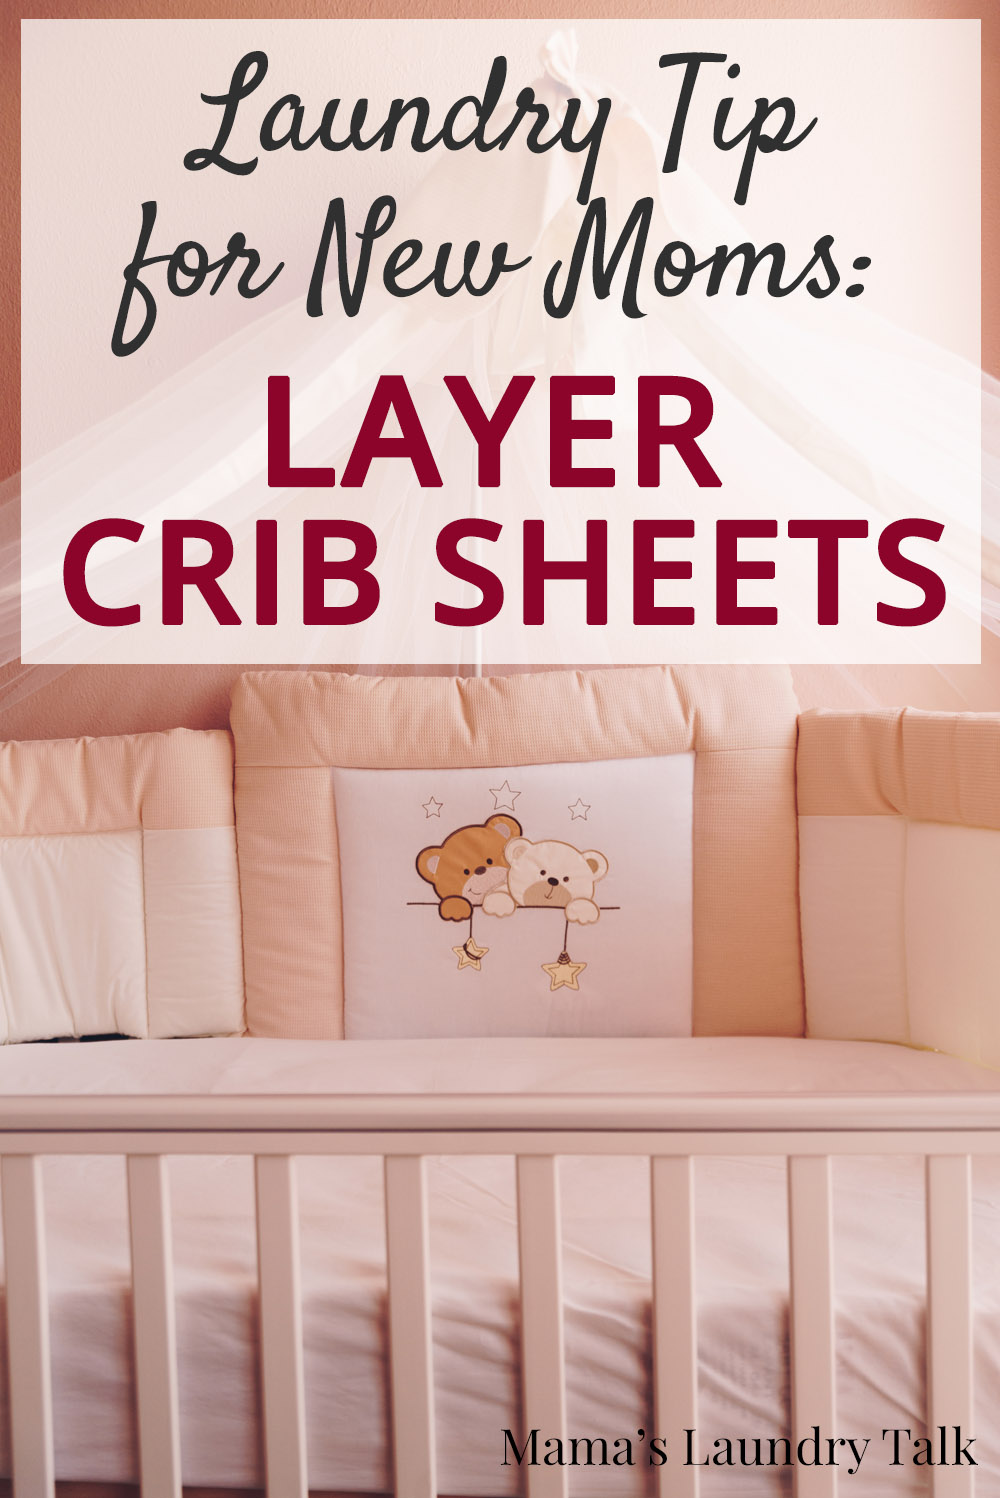 Baby Cradle Sheets Layering Crib Sheets A Laundry Tip For New Moms Mama S